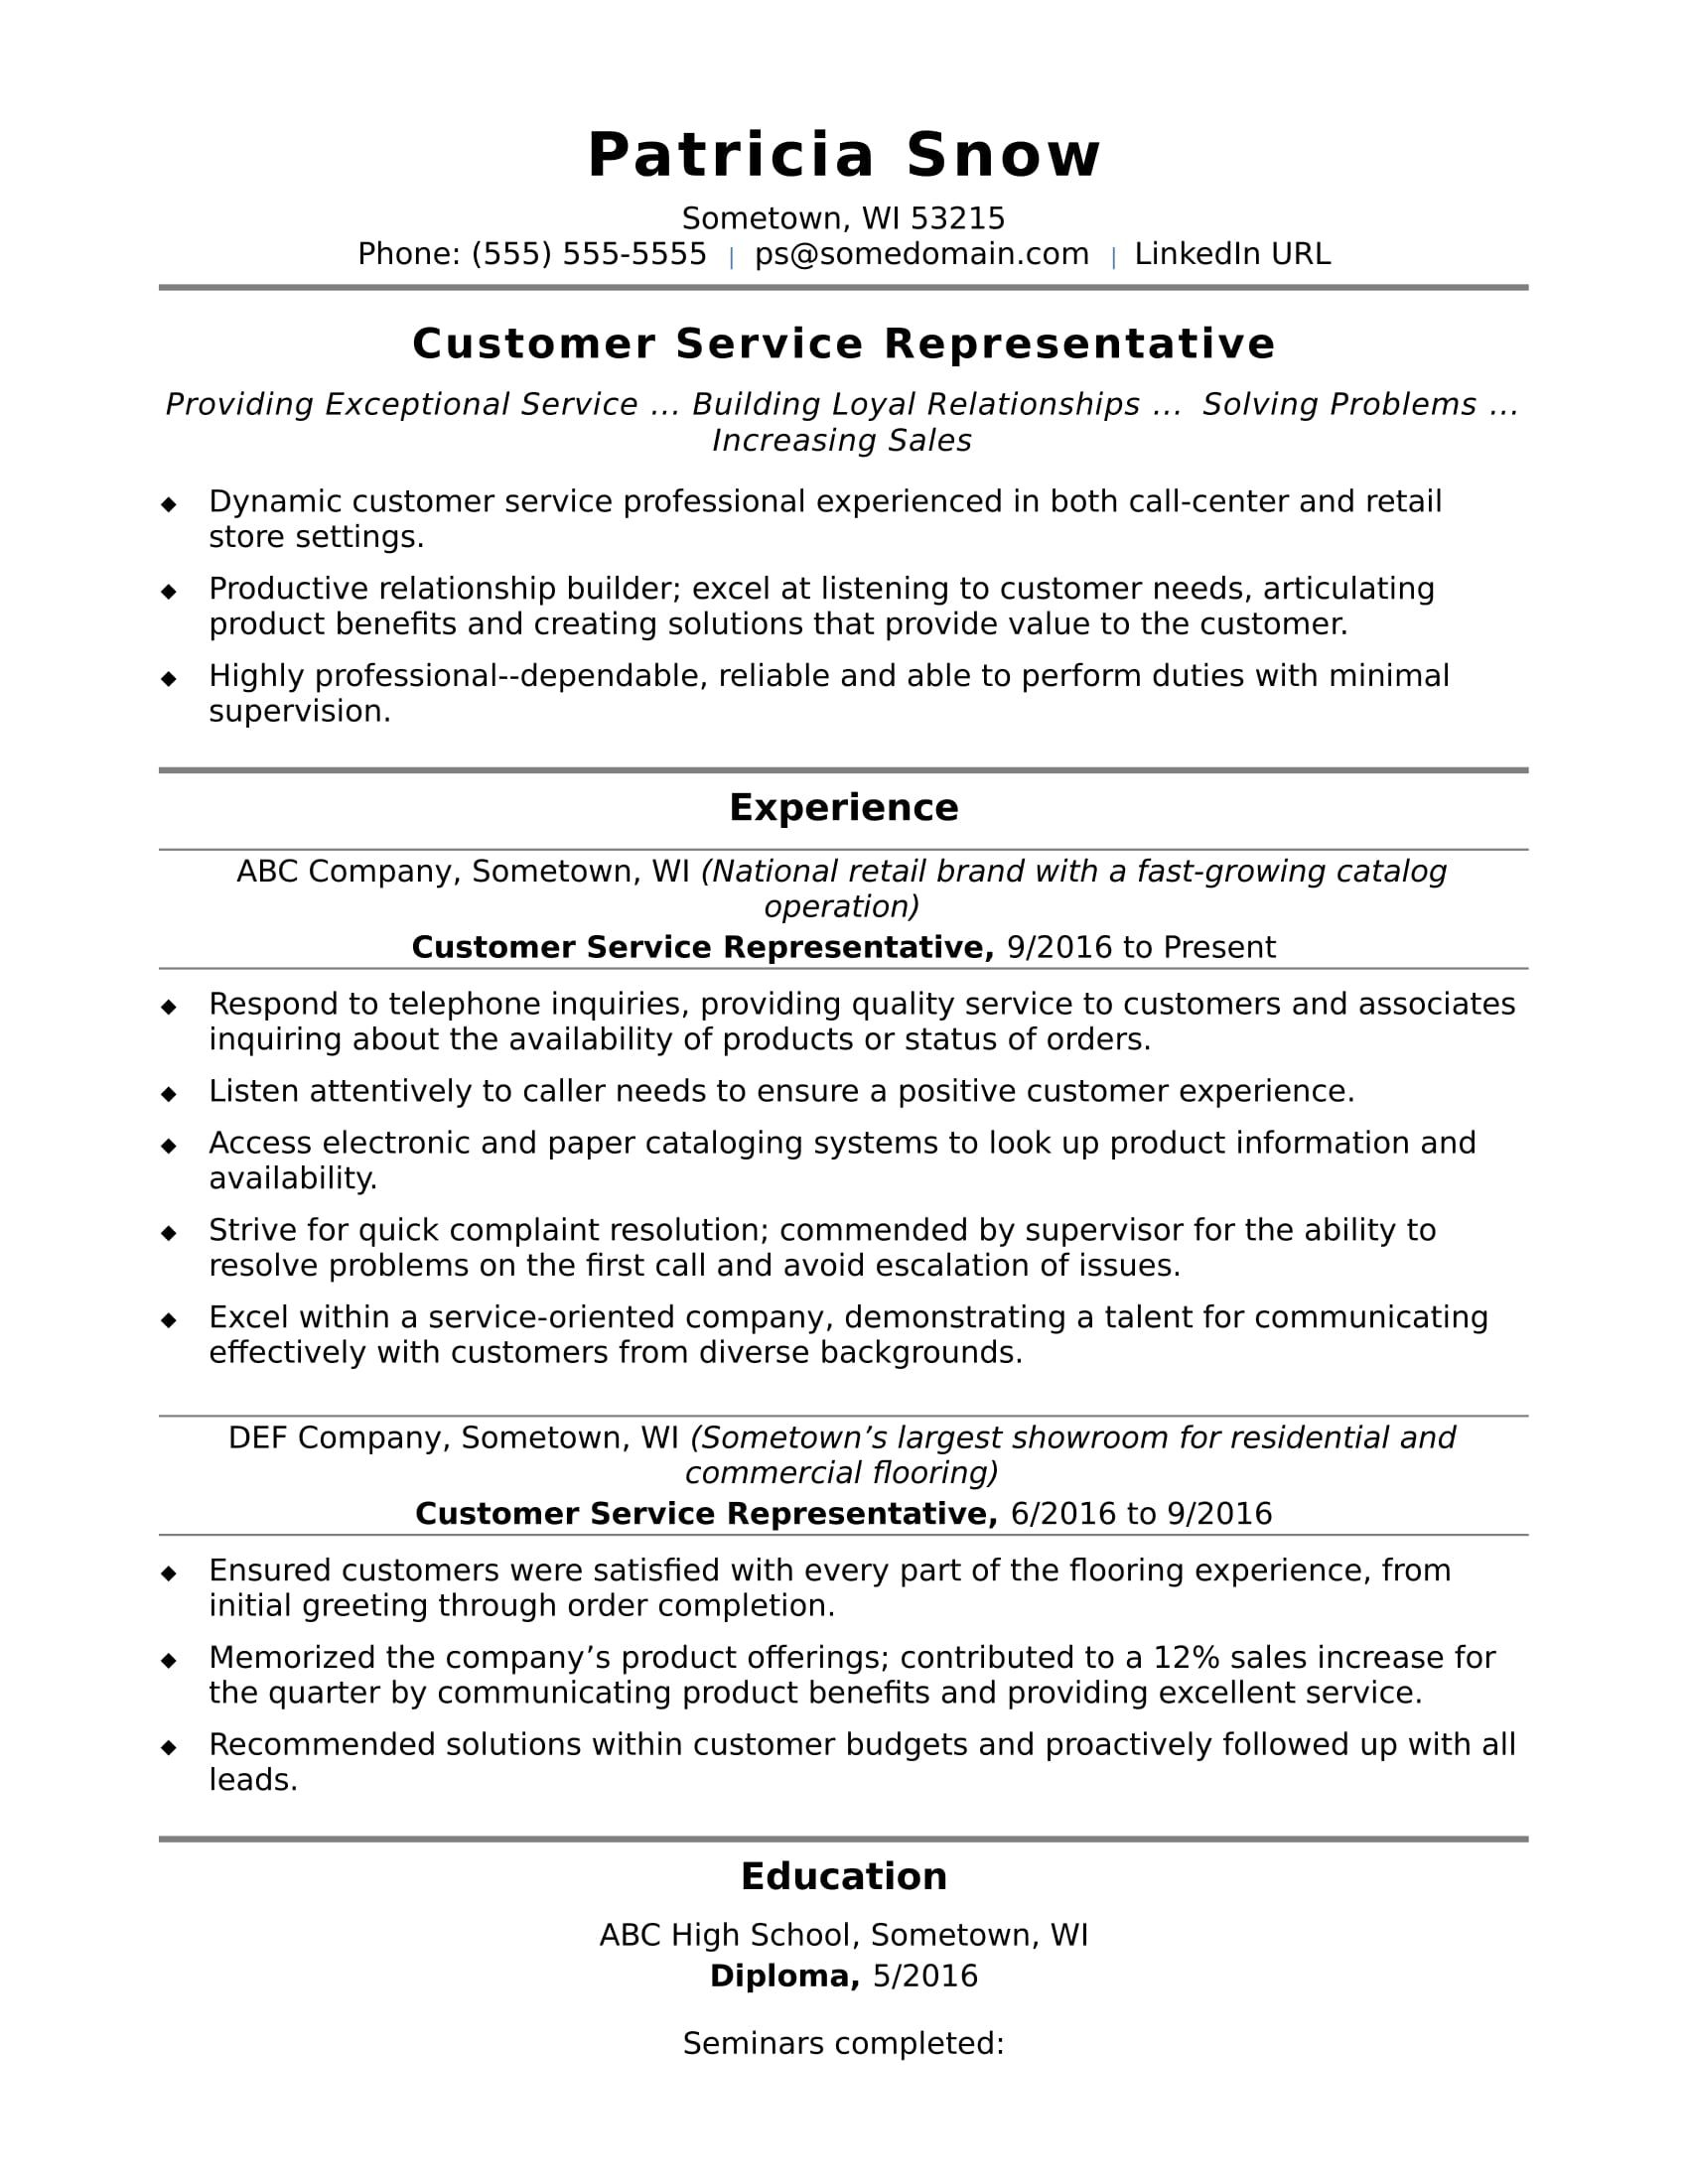 View Our Sample Resume For An Entry Level Customer Service Representative For Ideas On H Customer Service Resume Examples Customer Service Resume Resume Skills